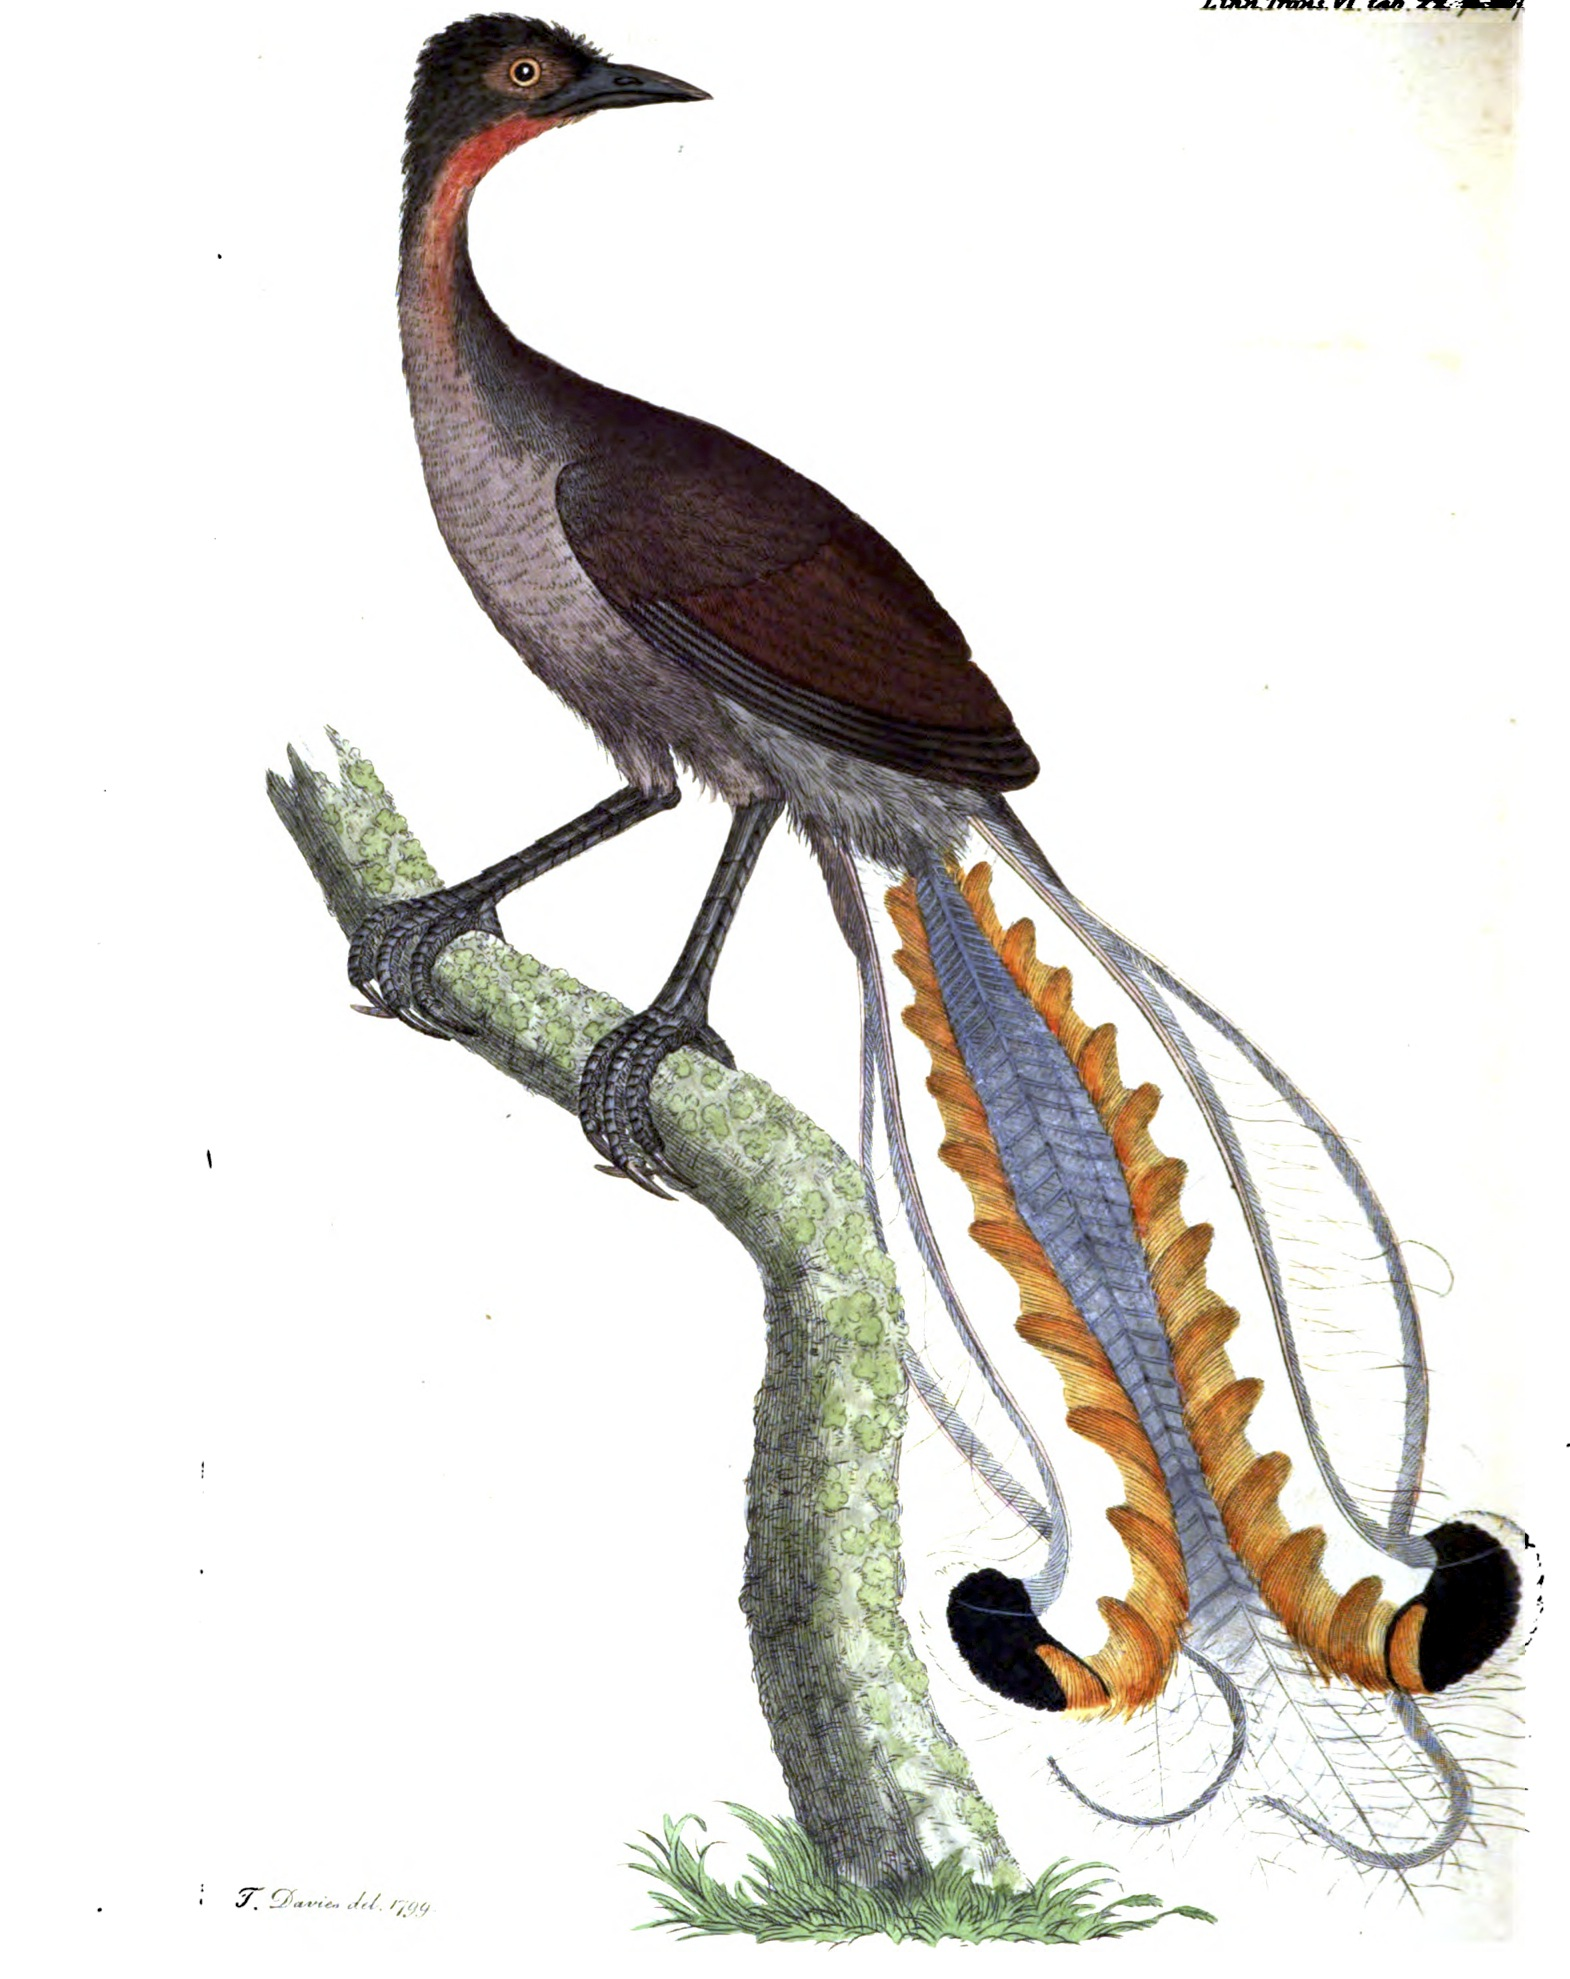 lyrebird wikipedia